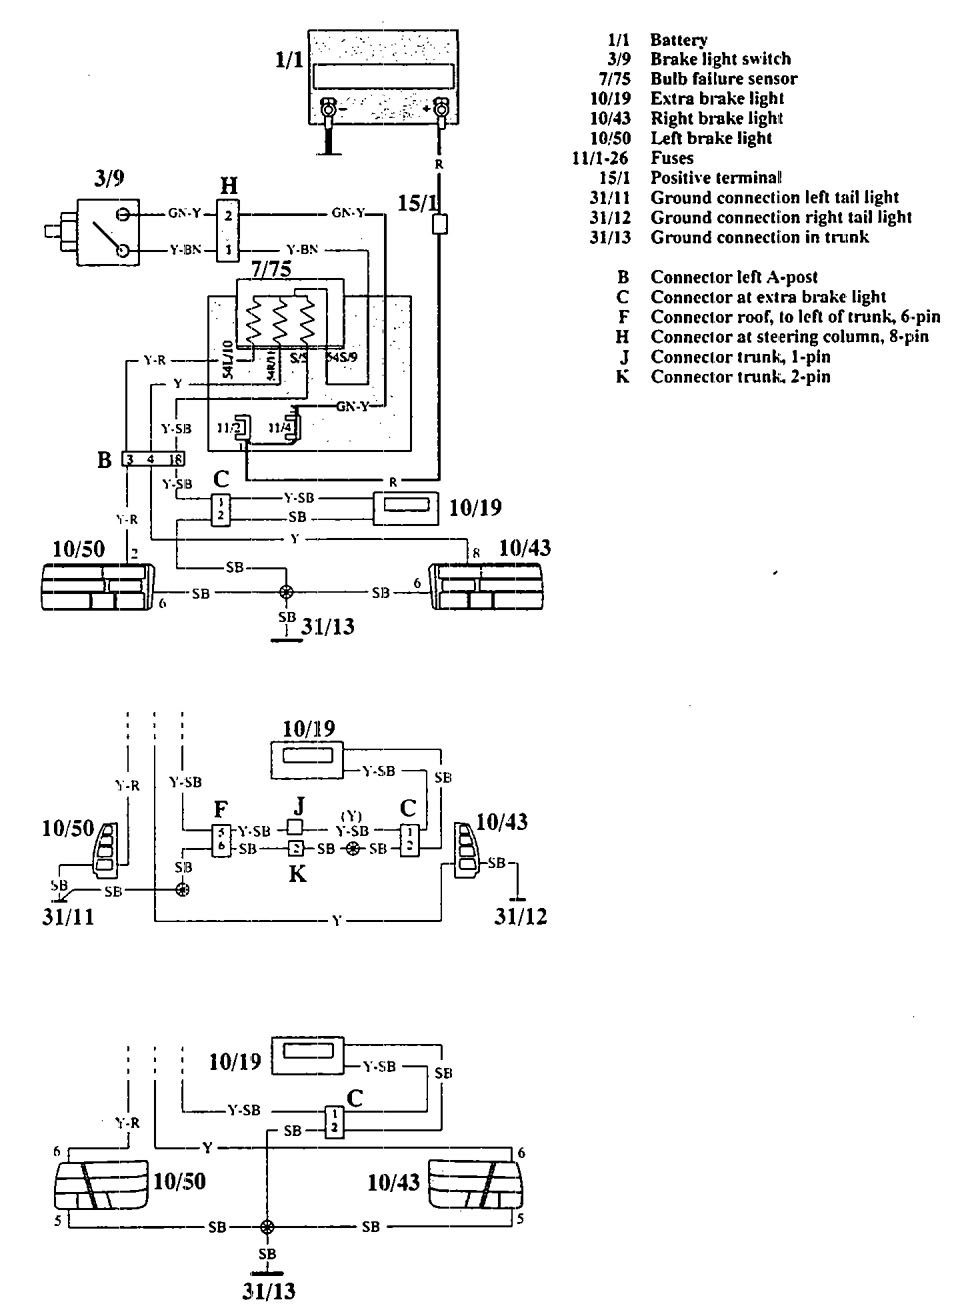 Wiring Diagram For 1994 Volvo 940 : Volvo fuse box diagram wiring images